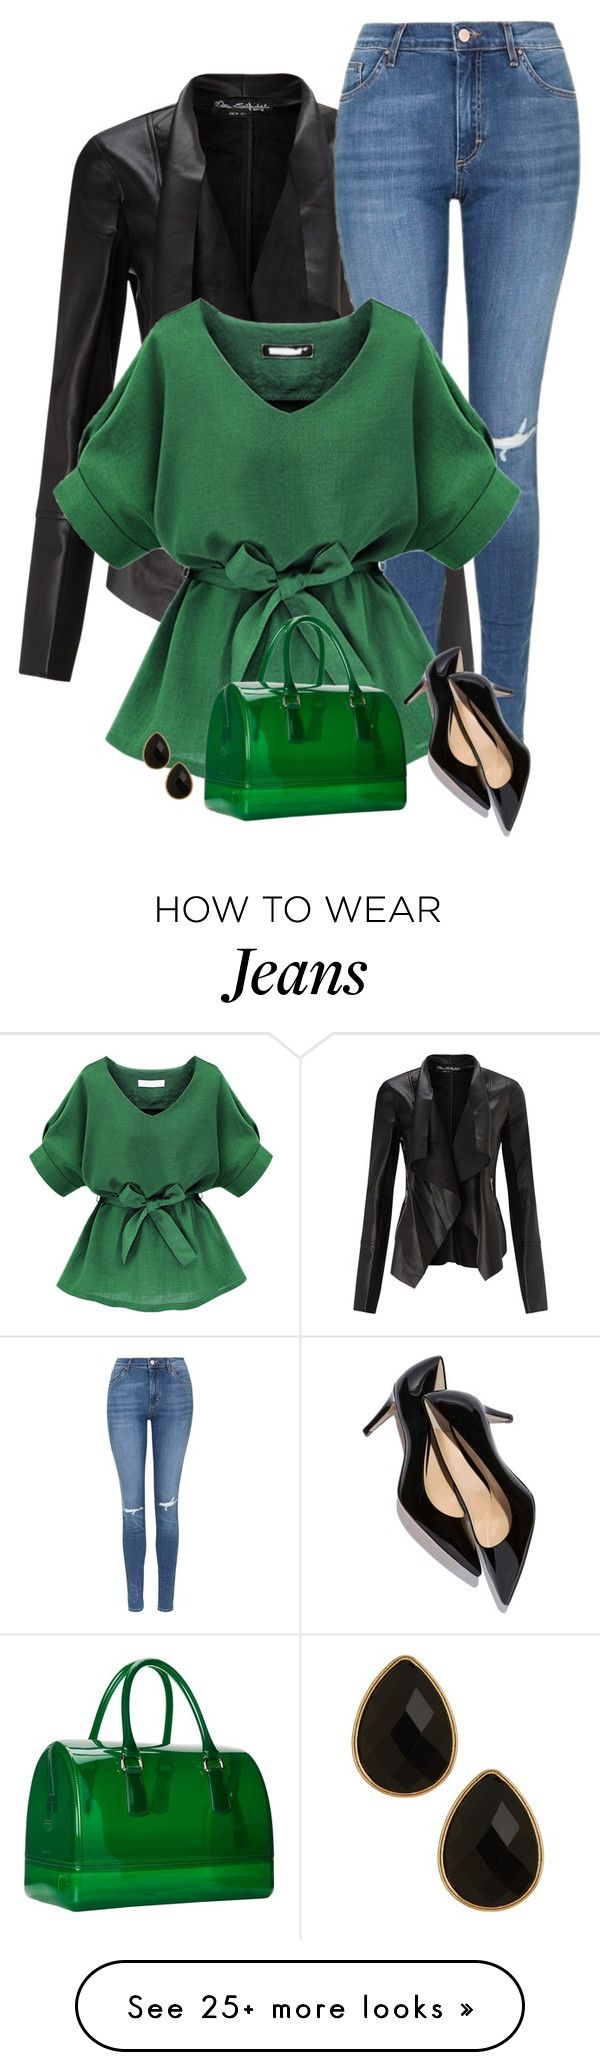 """green"" by divacrafts on Polyvore featuring Miss Selfridge, Topshop, Furla, Natasha Accessories, women's clothing, women, female, woman, misses and juniors"